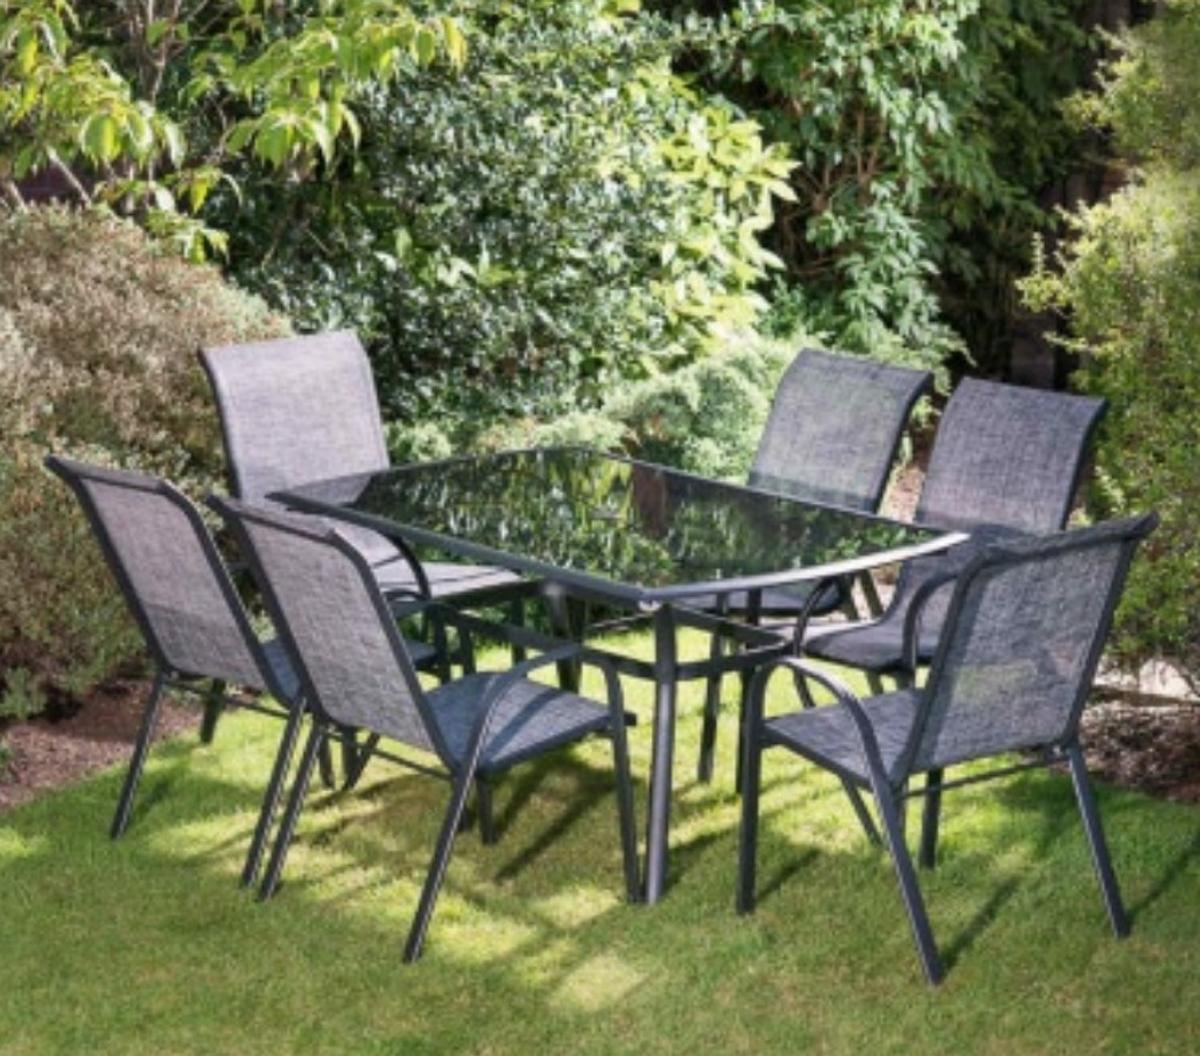 garden patio table and chairs set in